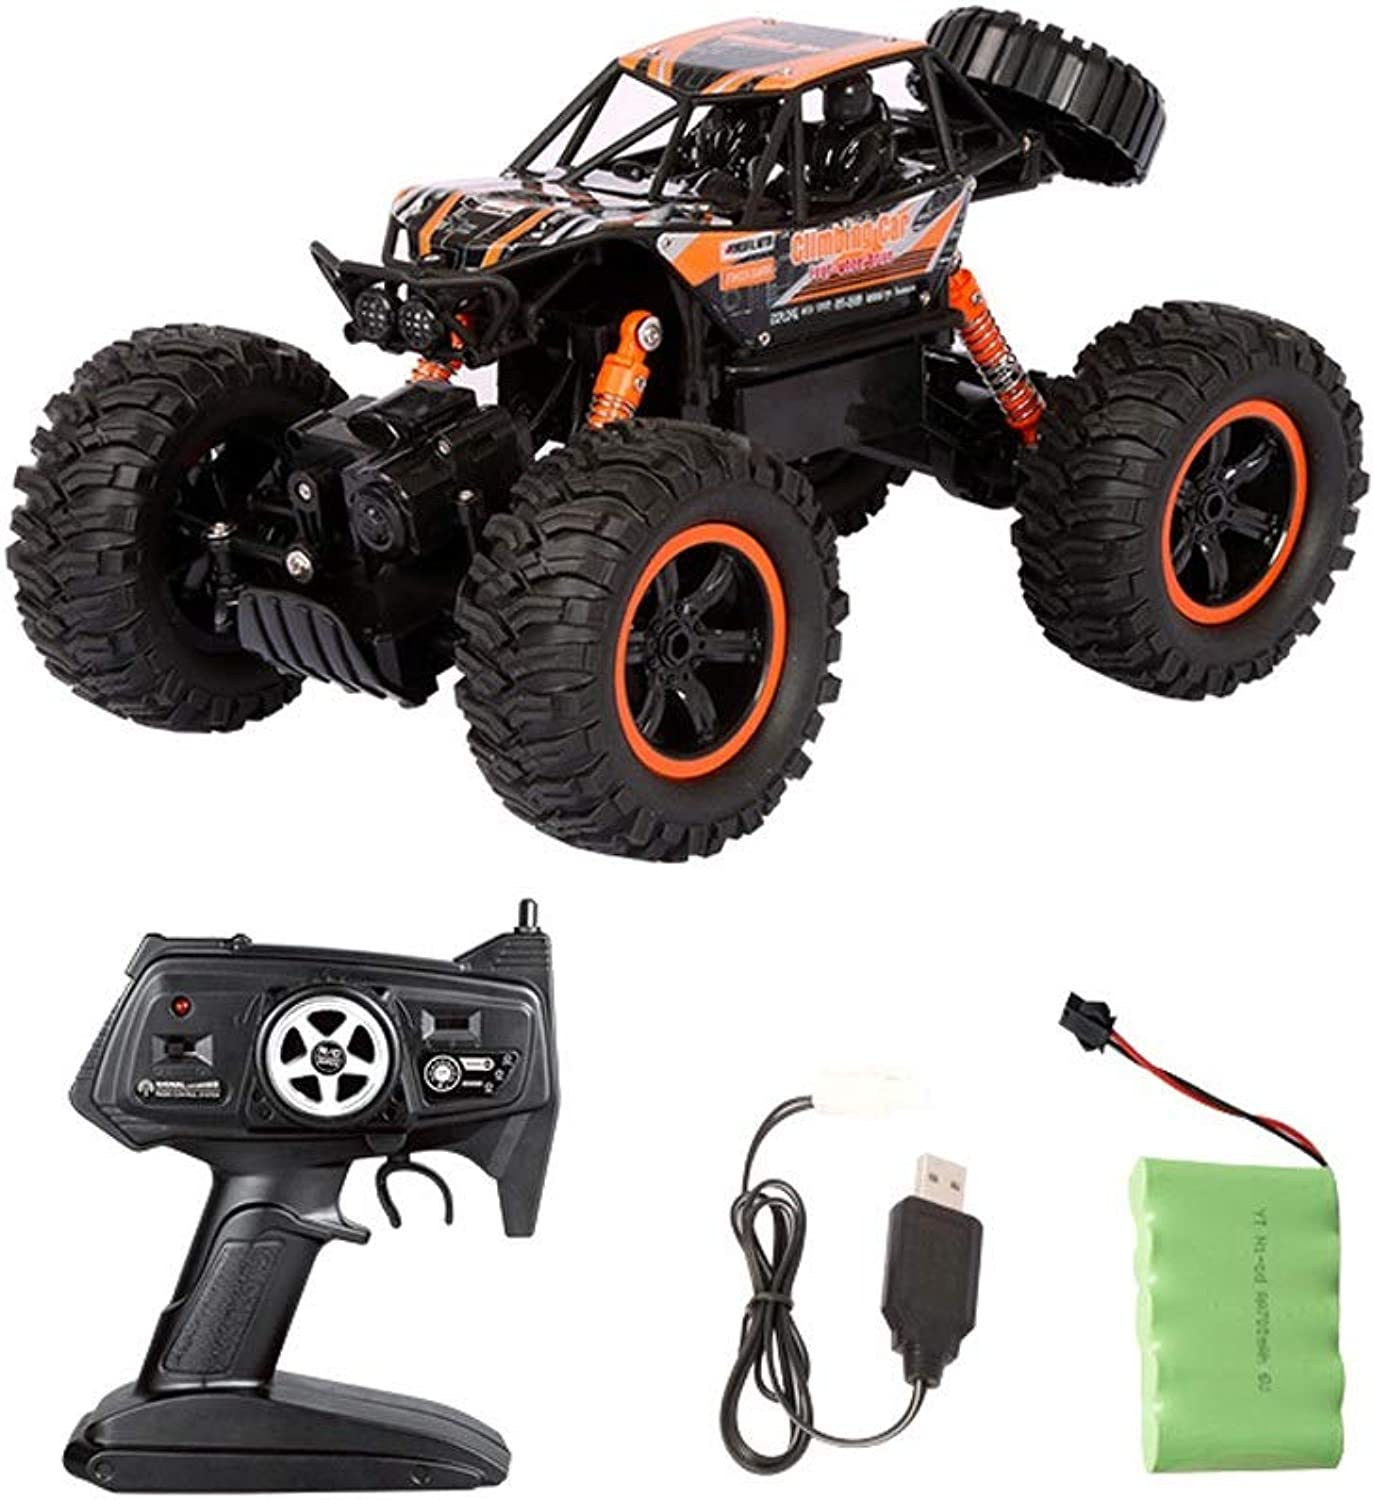 Tagke 4WD High Speed Rock Climbing Car 2.4GHz Charging Remote Control Car Dual Motor Powerful Power Offroad Vehicle Independent Shock Absorber Antifall Crash Large Overroad Tire Antiskid RC Car Us